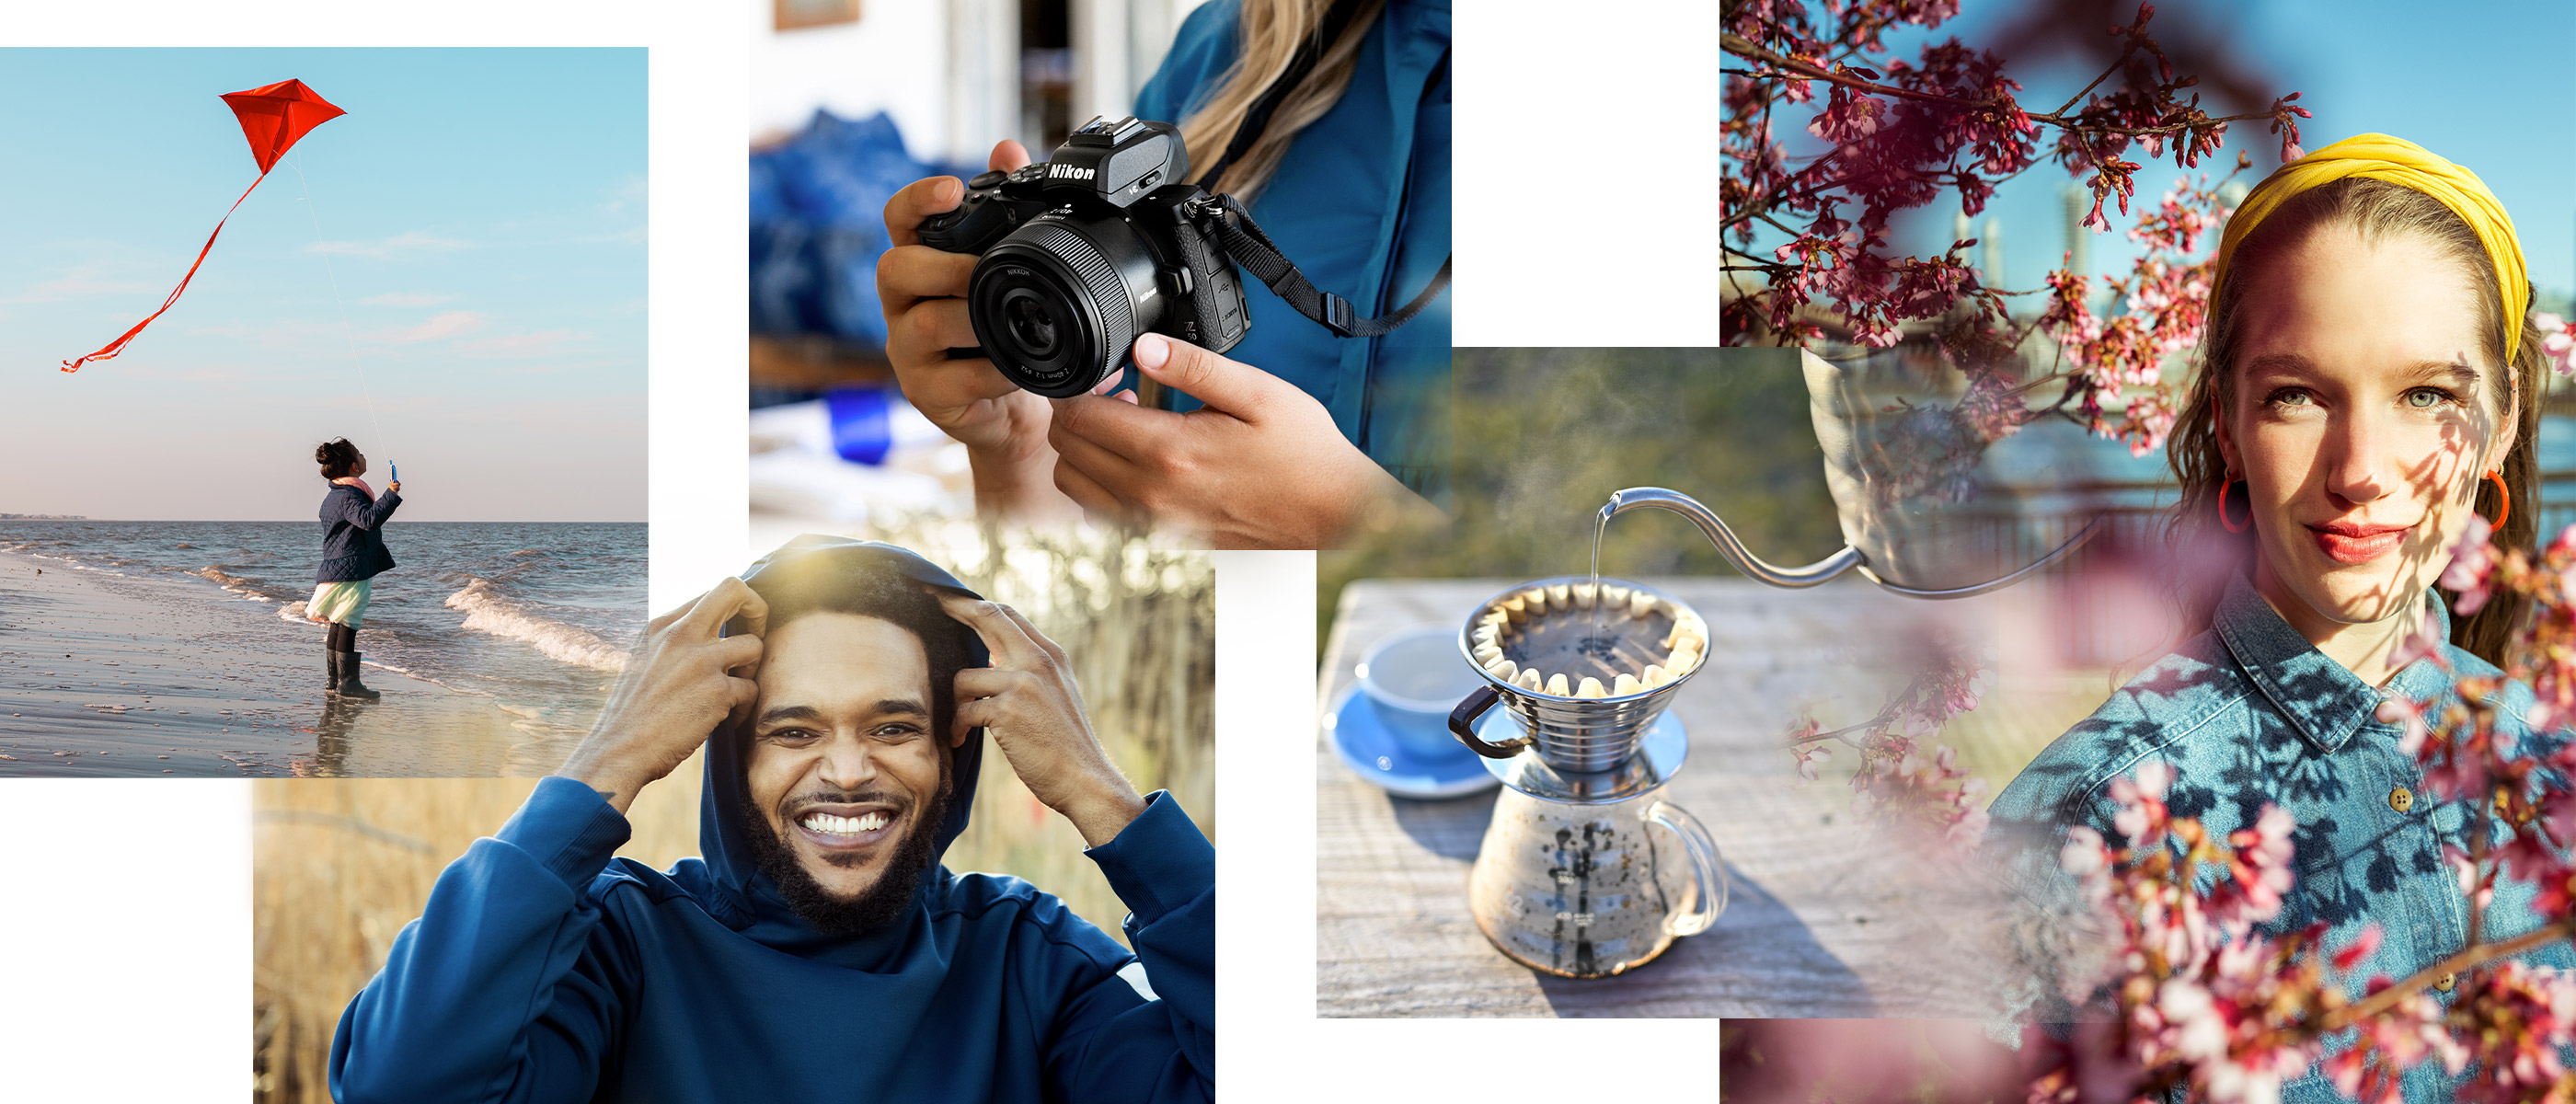 Collage of images taken with the NIKKOR Z 40mm f/2 including portraits, still life and a person holding a Z camera and lens